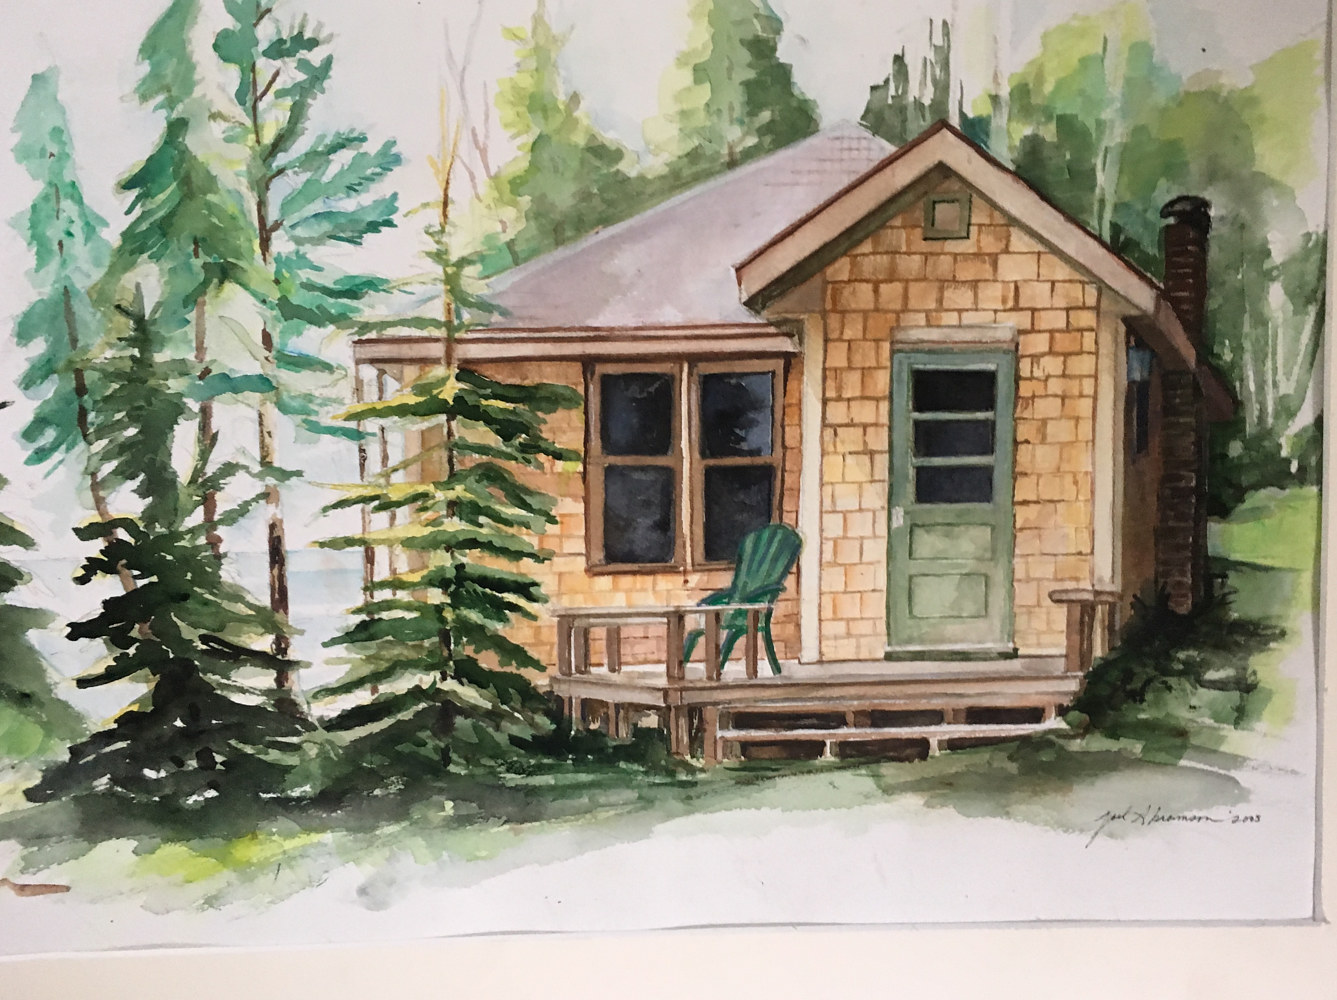 Watercolor Northwoods Cabin by Joel Abramson